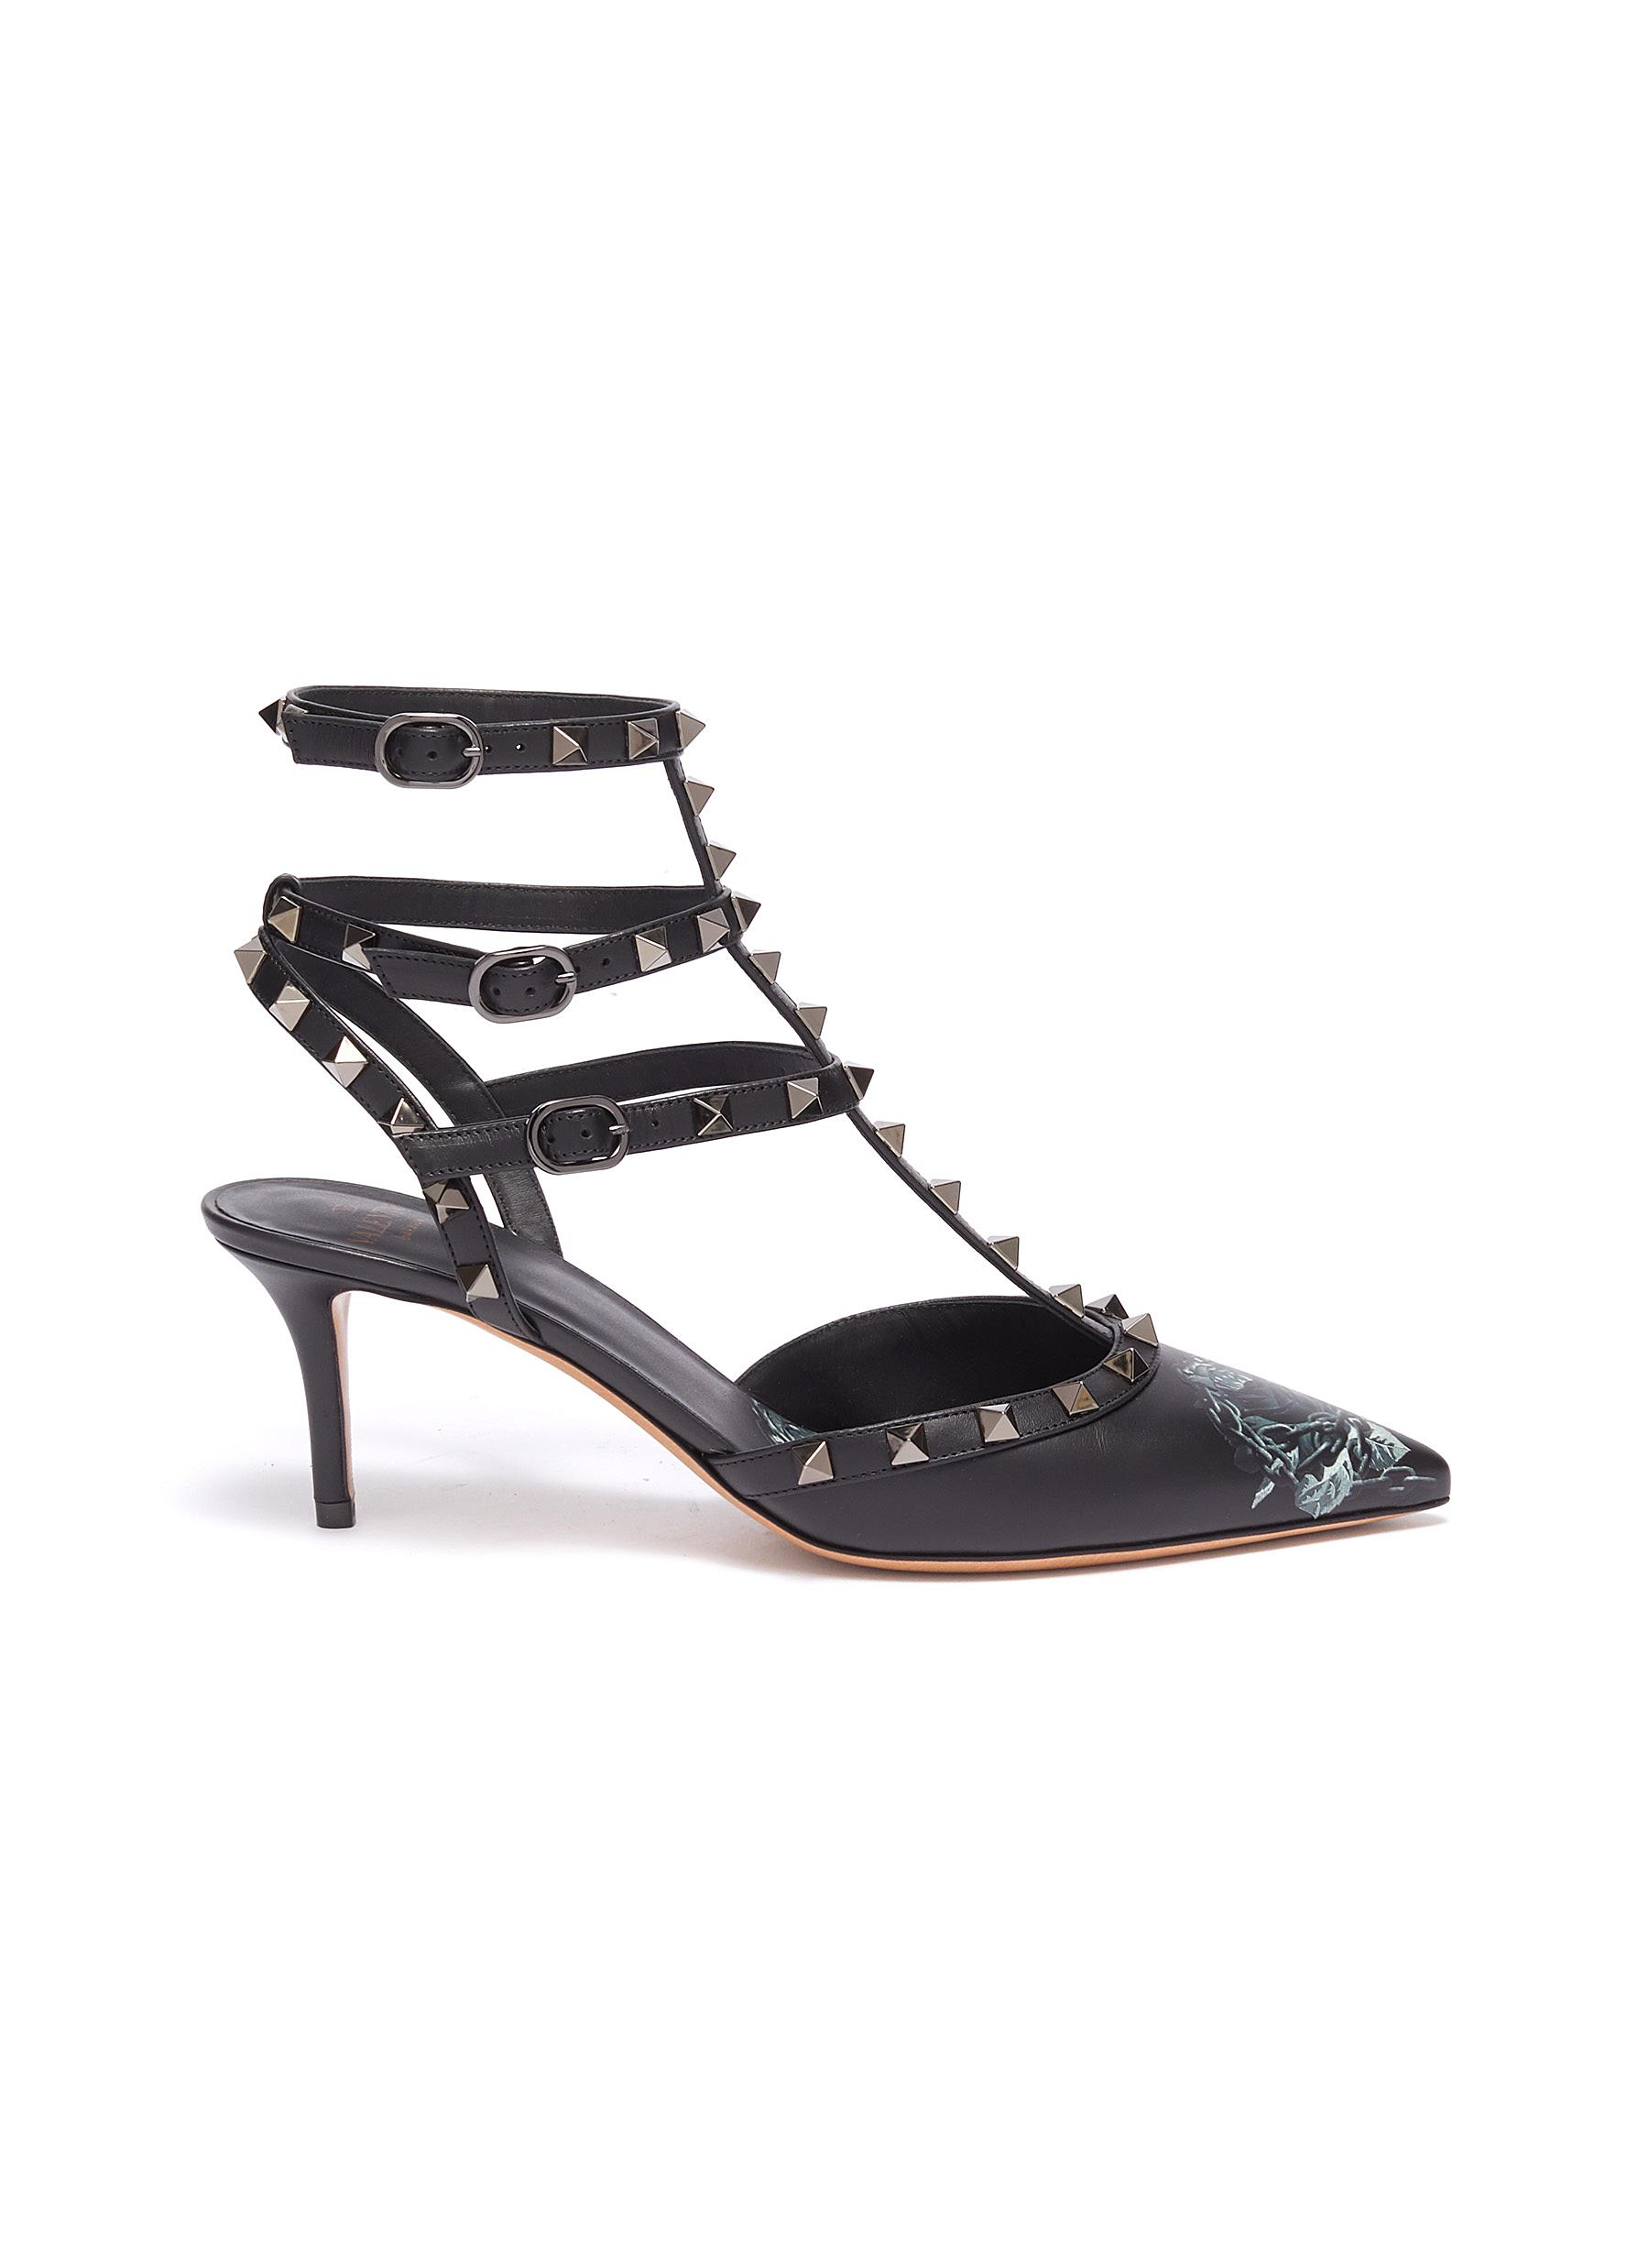 x UNDERCOVER Rockstud rose print leather strappy pumps by Valentino